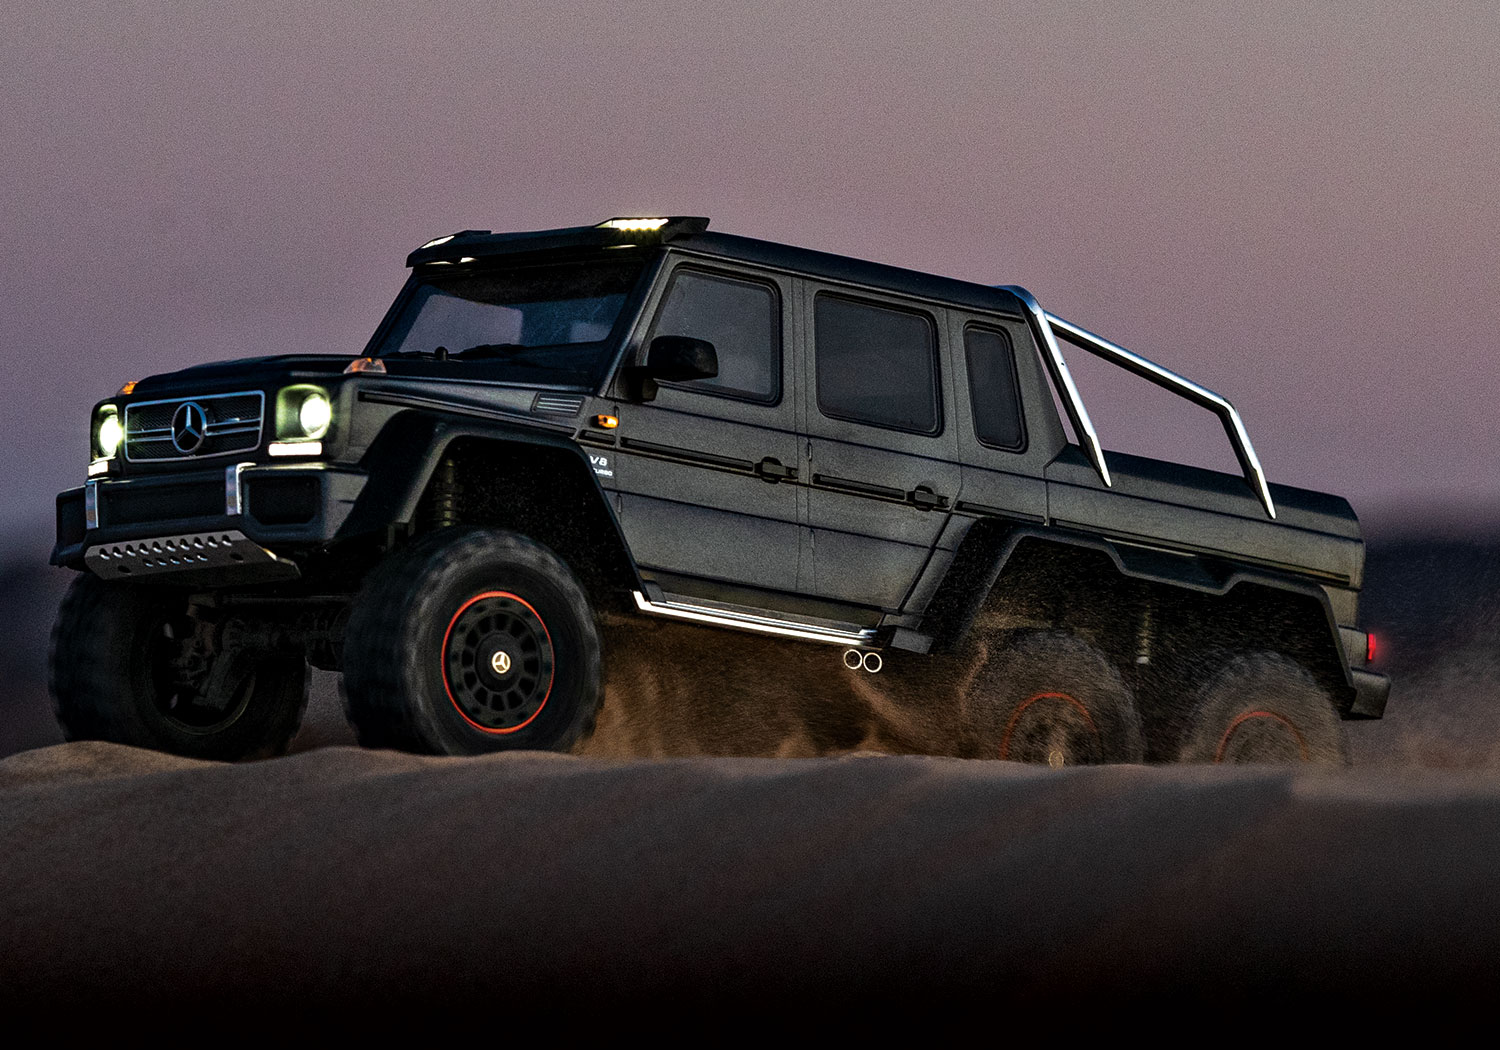 Traxxas TRX-6 with Mercedes-Benz G 63 AMG 6x6 Black